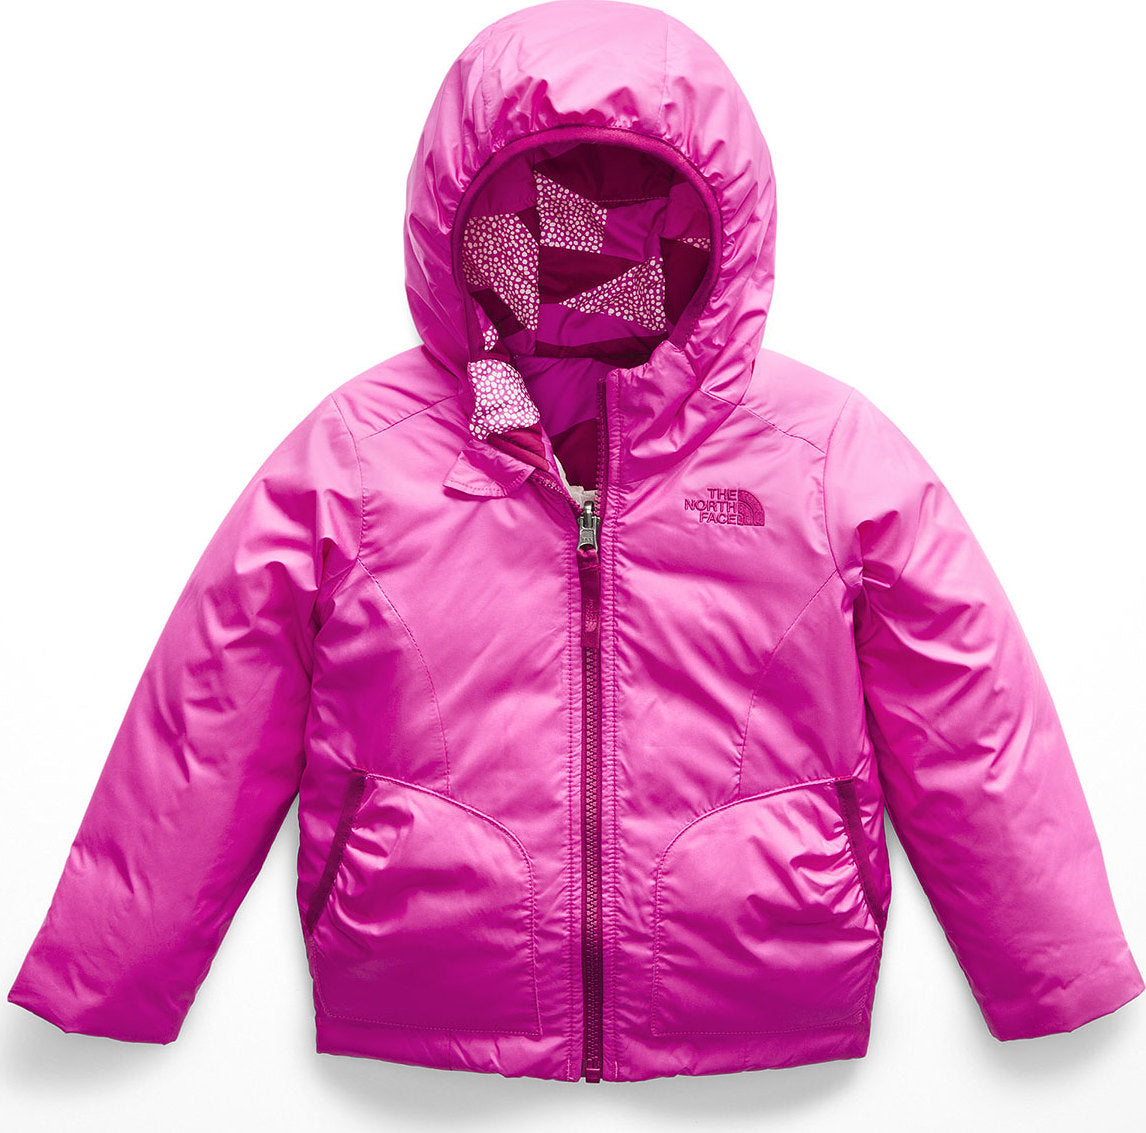 28d6713f655f The North Face Toddler Girl s Reversible Perrito Jacket